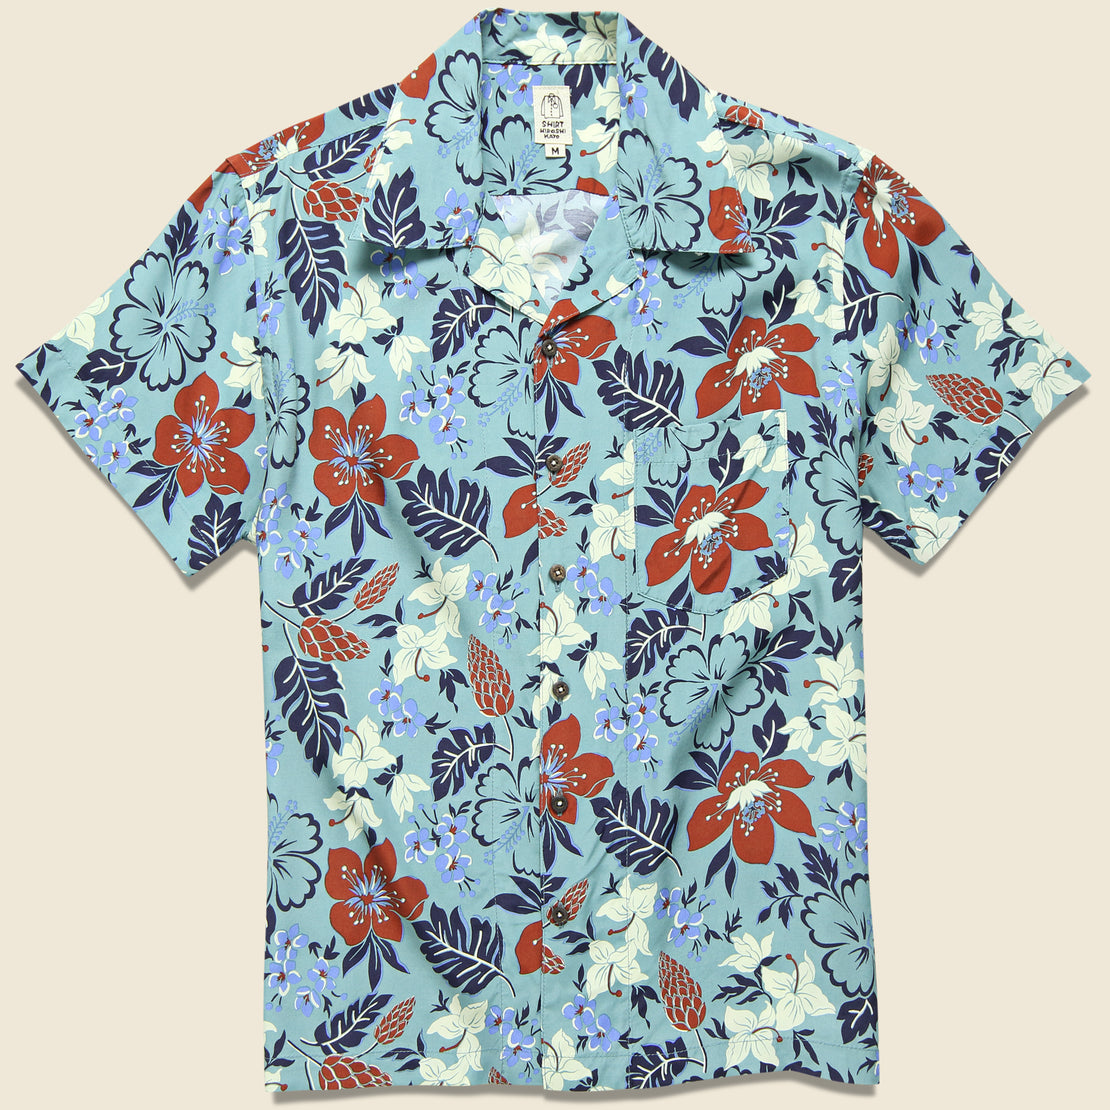 2c161ce6 KATO Wrench Aloha Shirt - Green/Blue ...